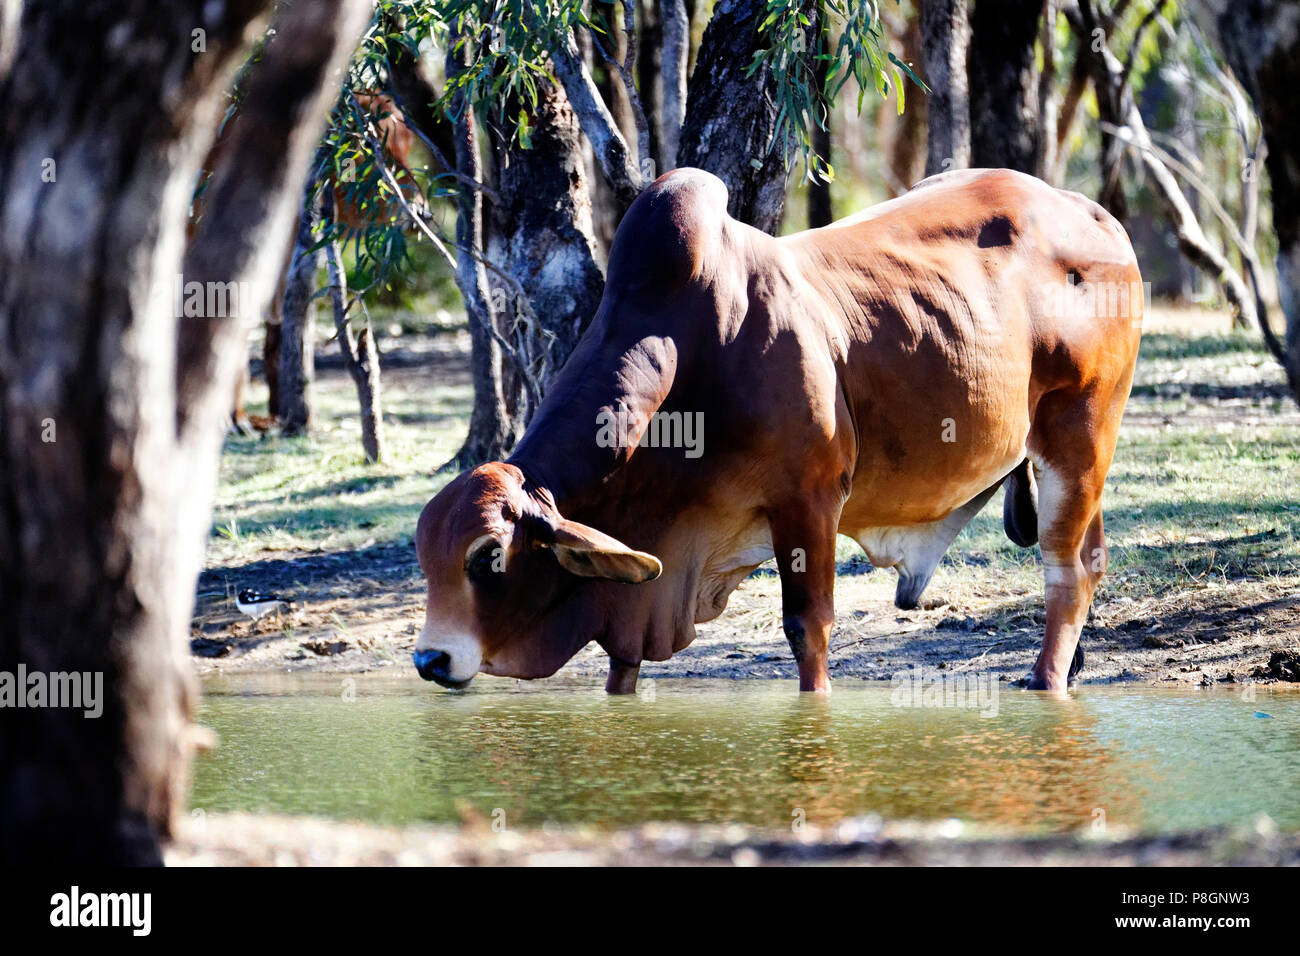 Humped Brahman breeding Bull, (Bos primigenius indicus), drinking from water hole, Australia - Stock Image